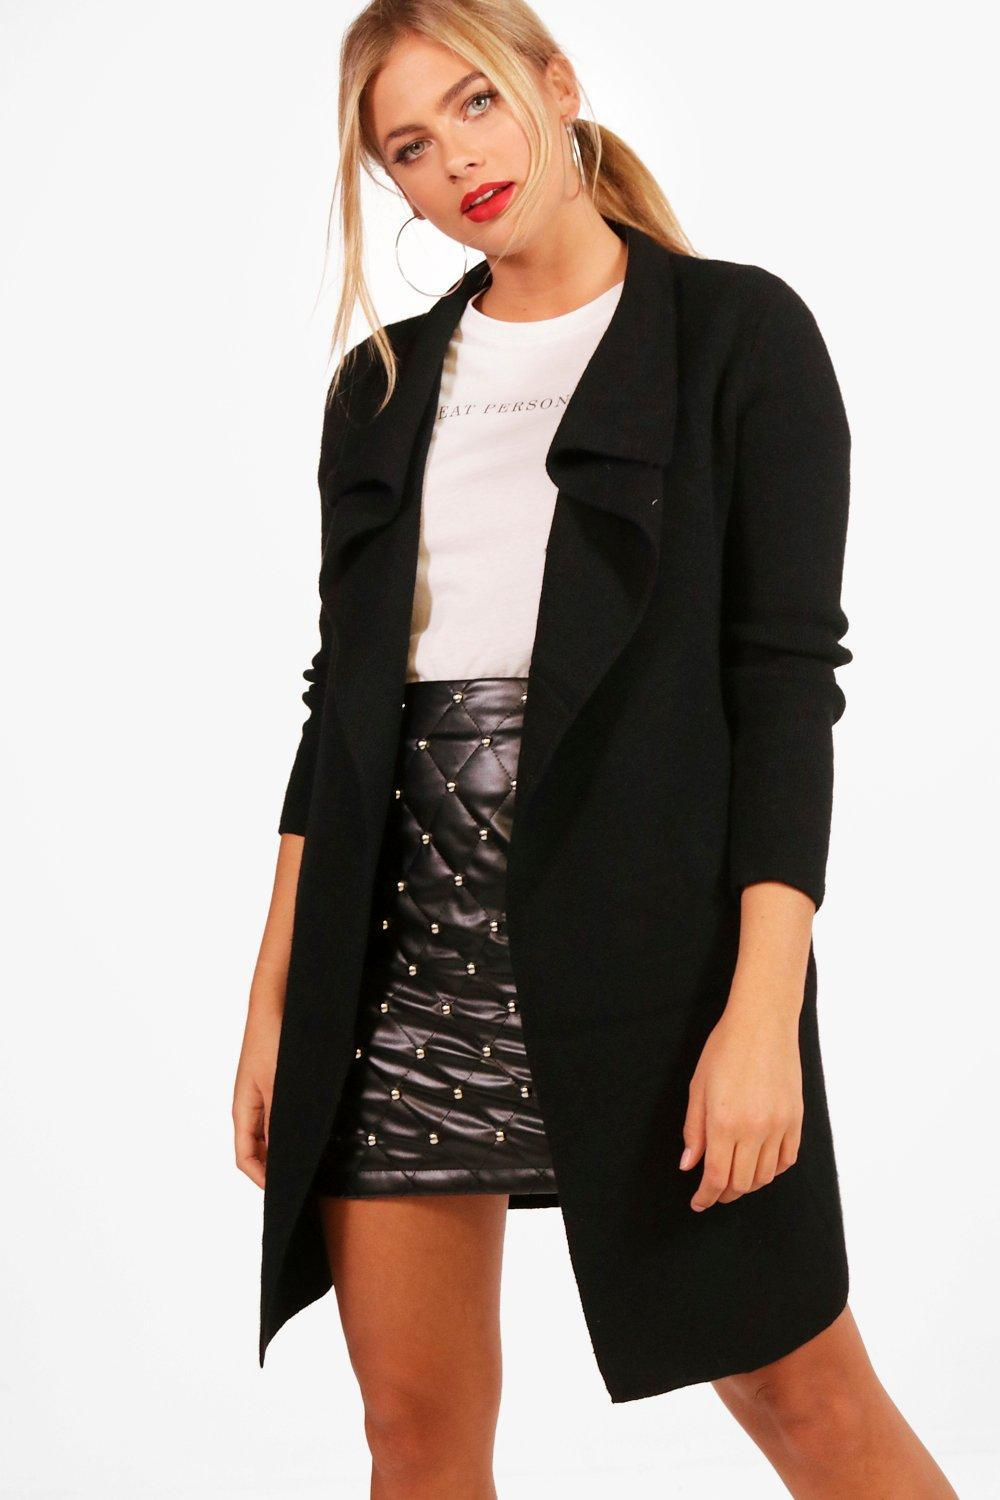 Boohoo Leah Zip Pocket Waterfall Cardigan in Black | Lyst